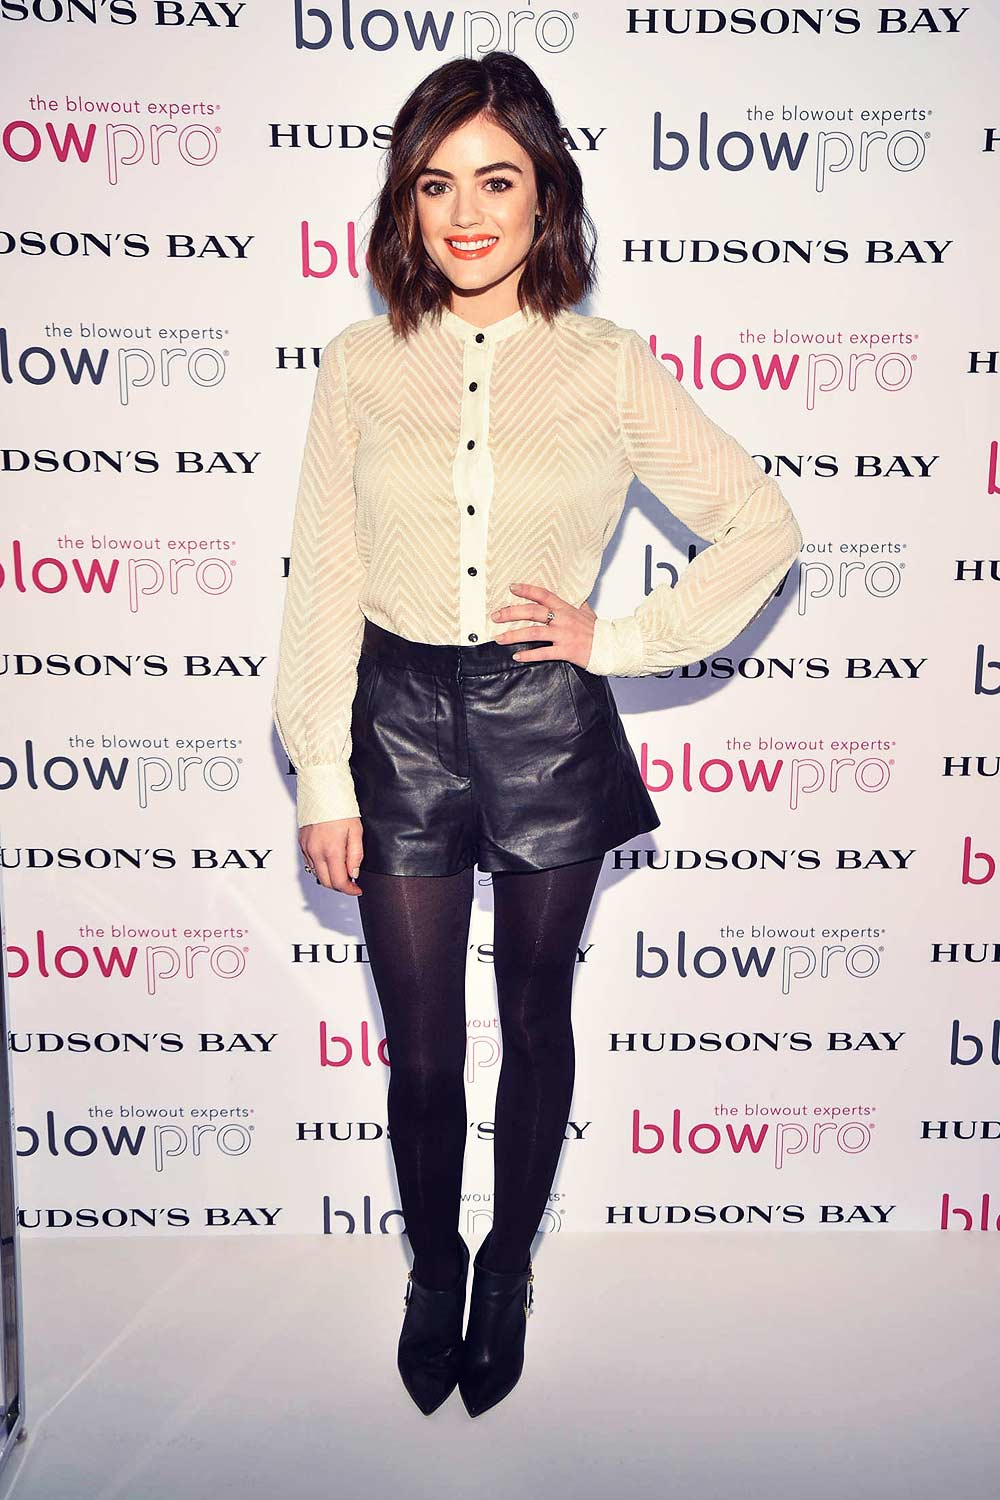 Lucy Hale Attends The Blowpro Launch Leather Celebrities